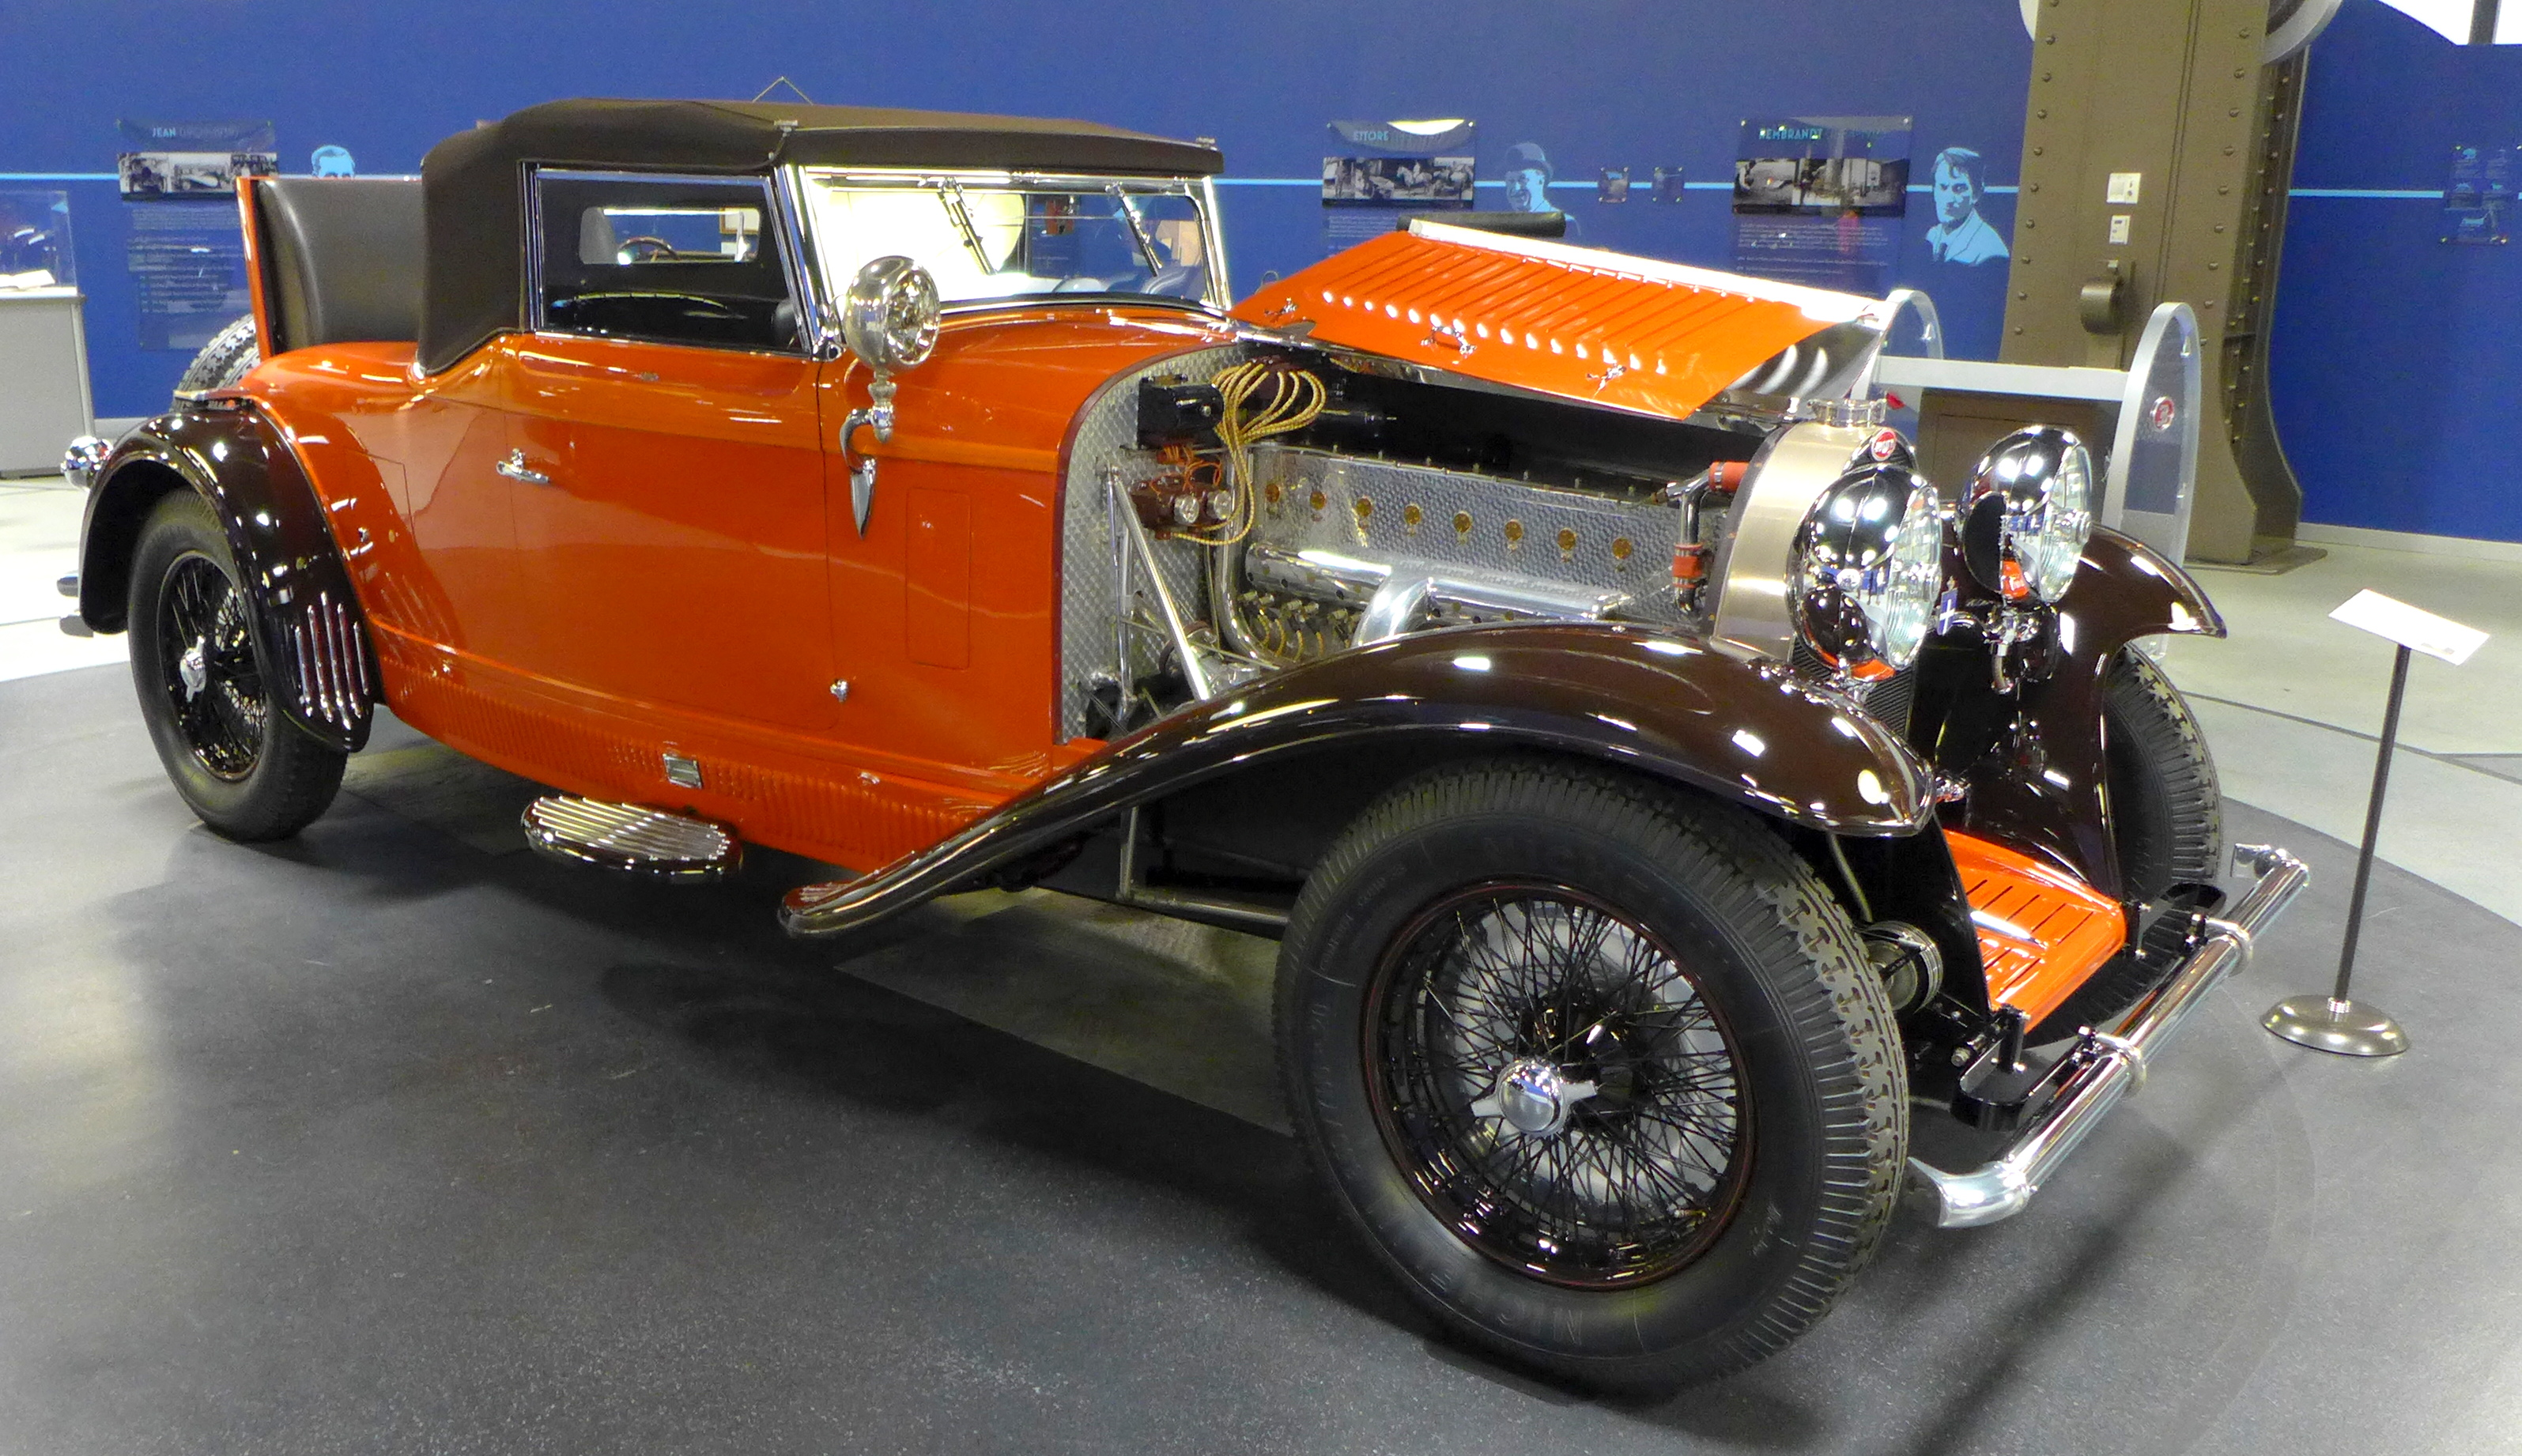 Bugatti Type 46 | Alain ot Photos Gallery on bugatti limousine, bugatti fast and furious 7, bugatti superveyron, ettore bugatti, bugatti emblem, bugatti 16c galibier concept, bugatti stretch limo, bugatti eb118, bugatti tumblr, bugatti eb110, bugatti phone, bugatti hd, bugatti company, bugatti type 51, bugatti finale, bugatti prototypes, bugatti engine, bentley 3.5 litre, bugatti hennessey venom, bugatti design, roland bugatti, bugatti with girls, bugatti veyron, bugatti mph, bugatti aventador, bugatti royale,